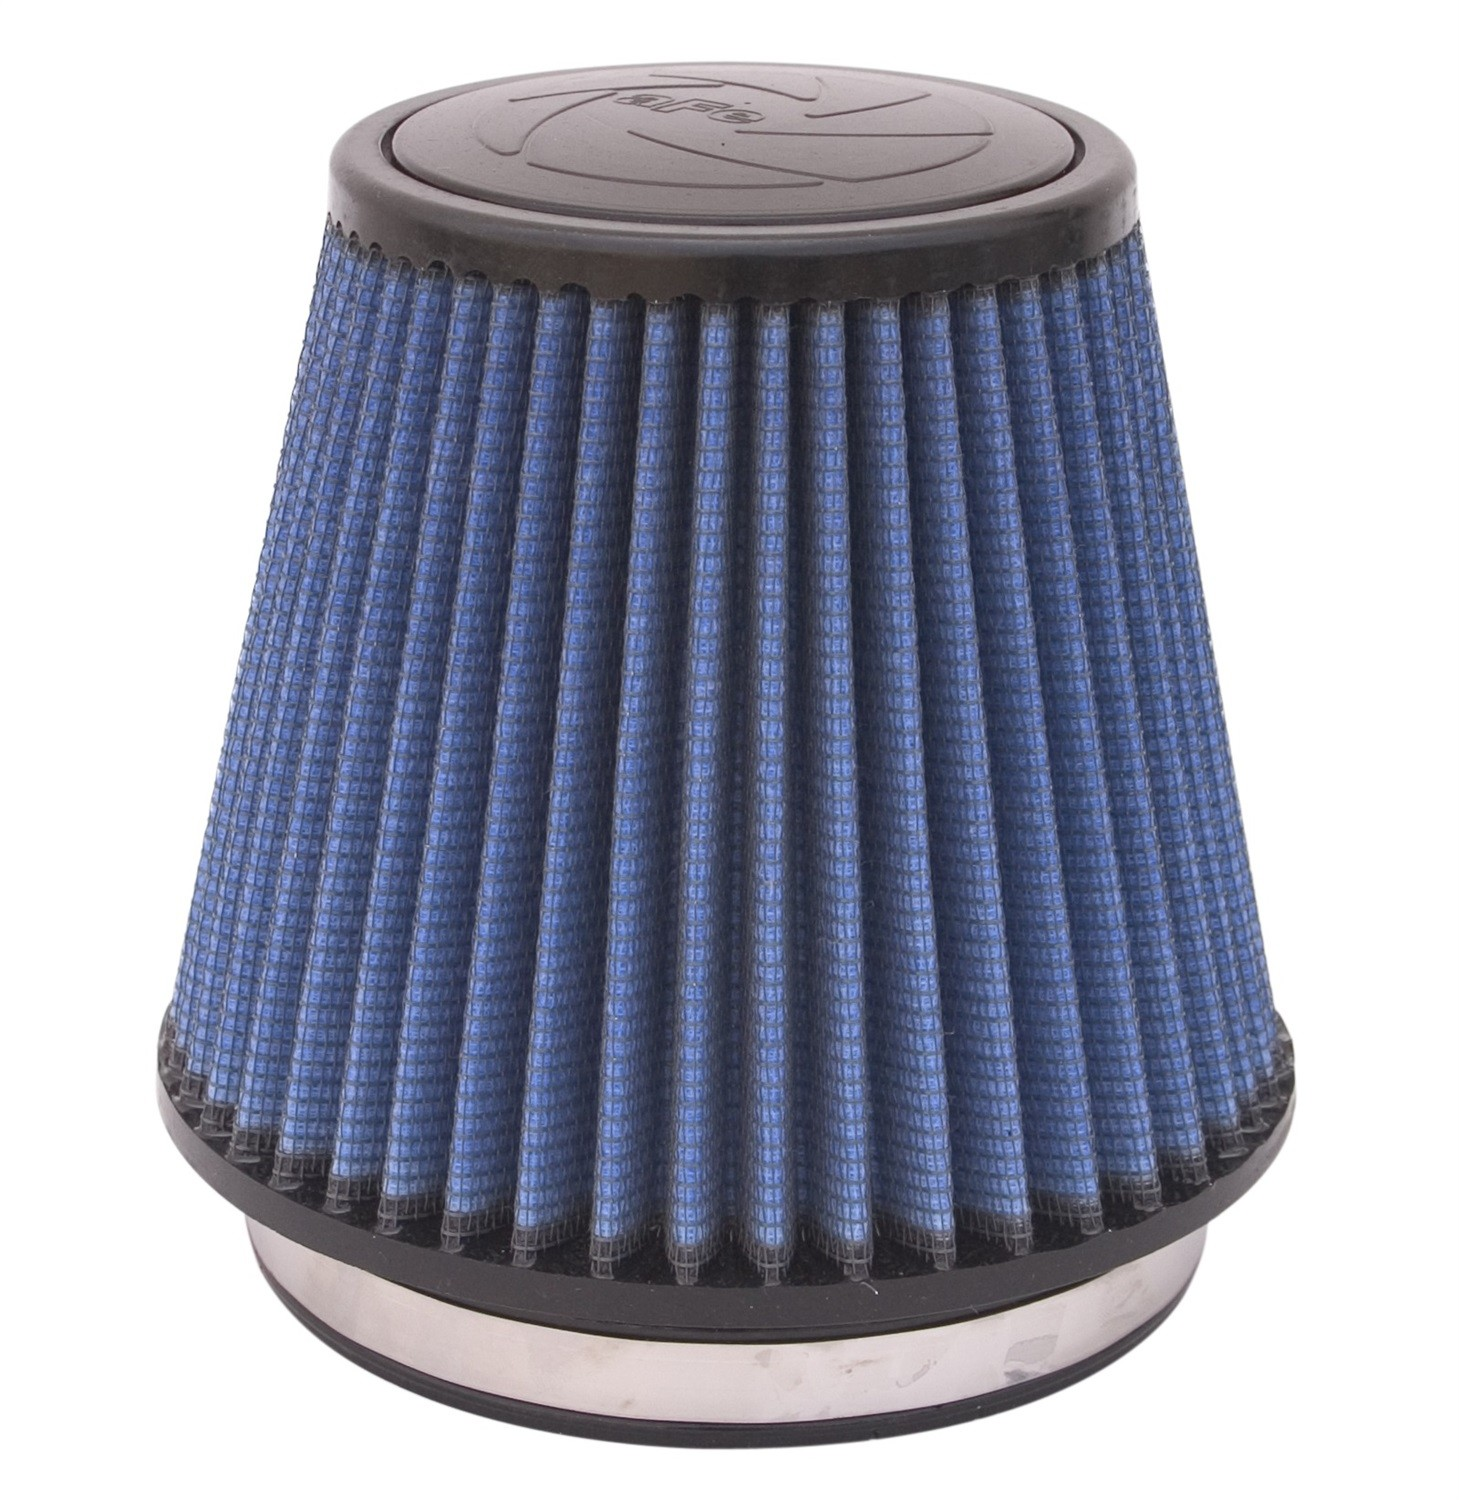 aFe POWER 24-55506 Magnum FLOW Pro 5R Air Filter